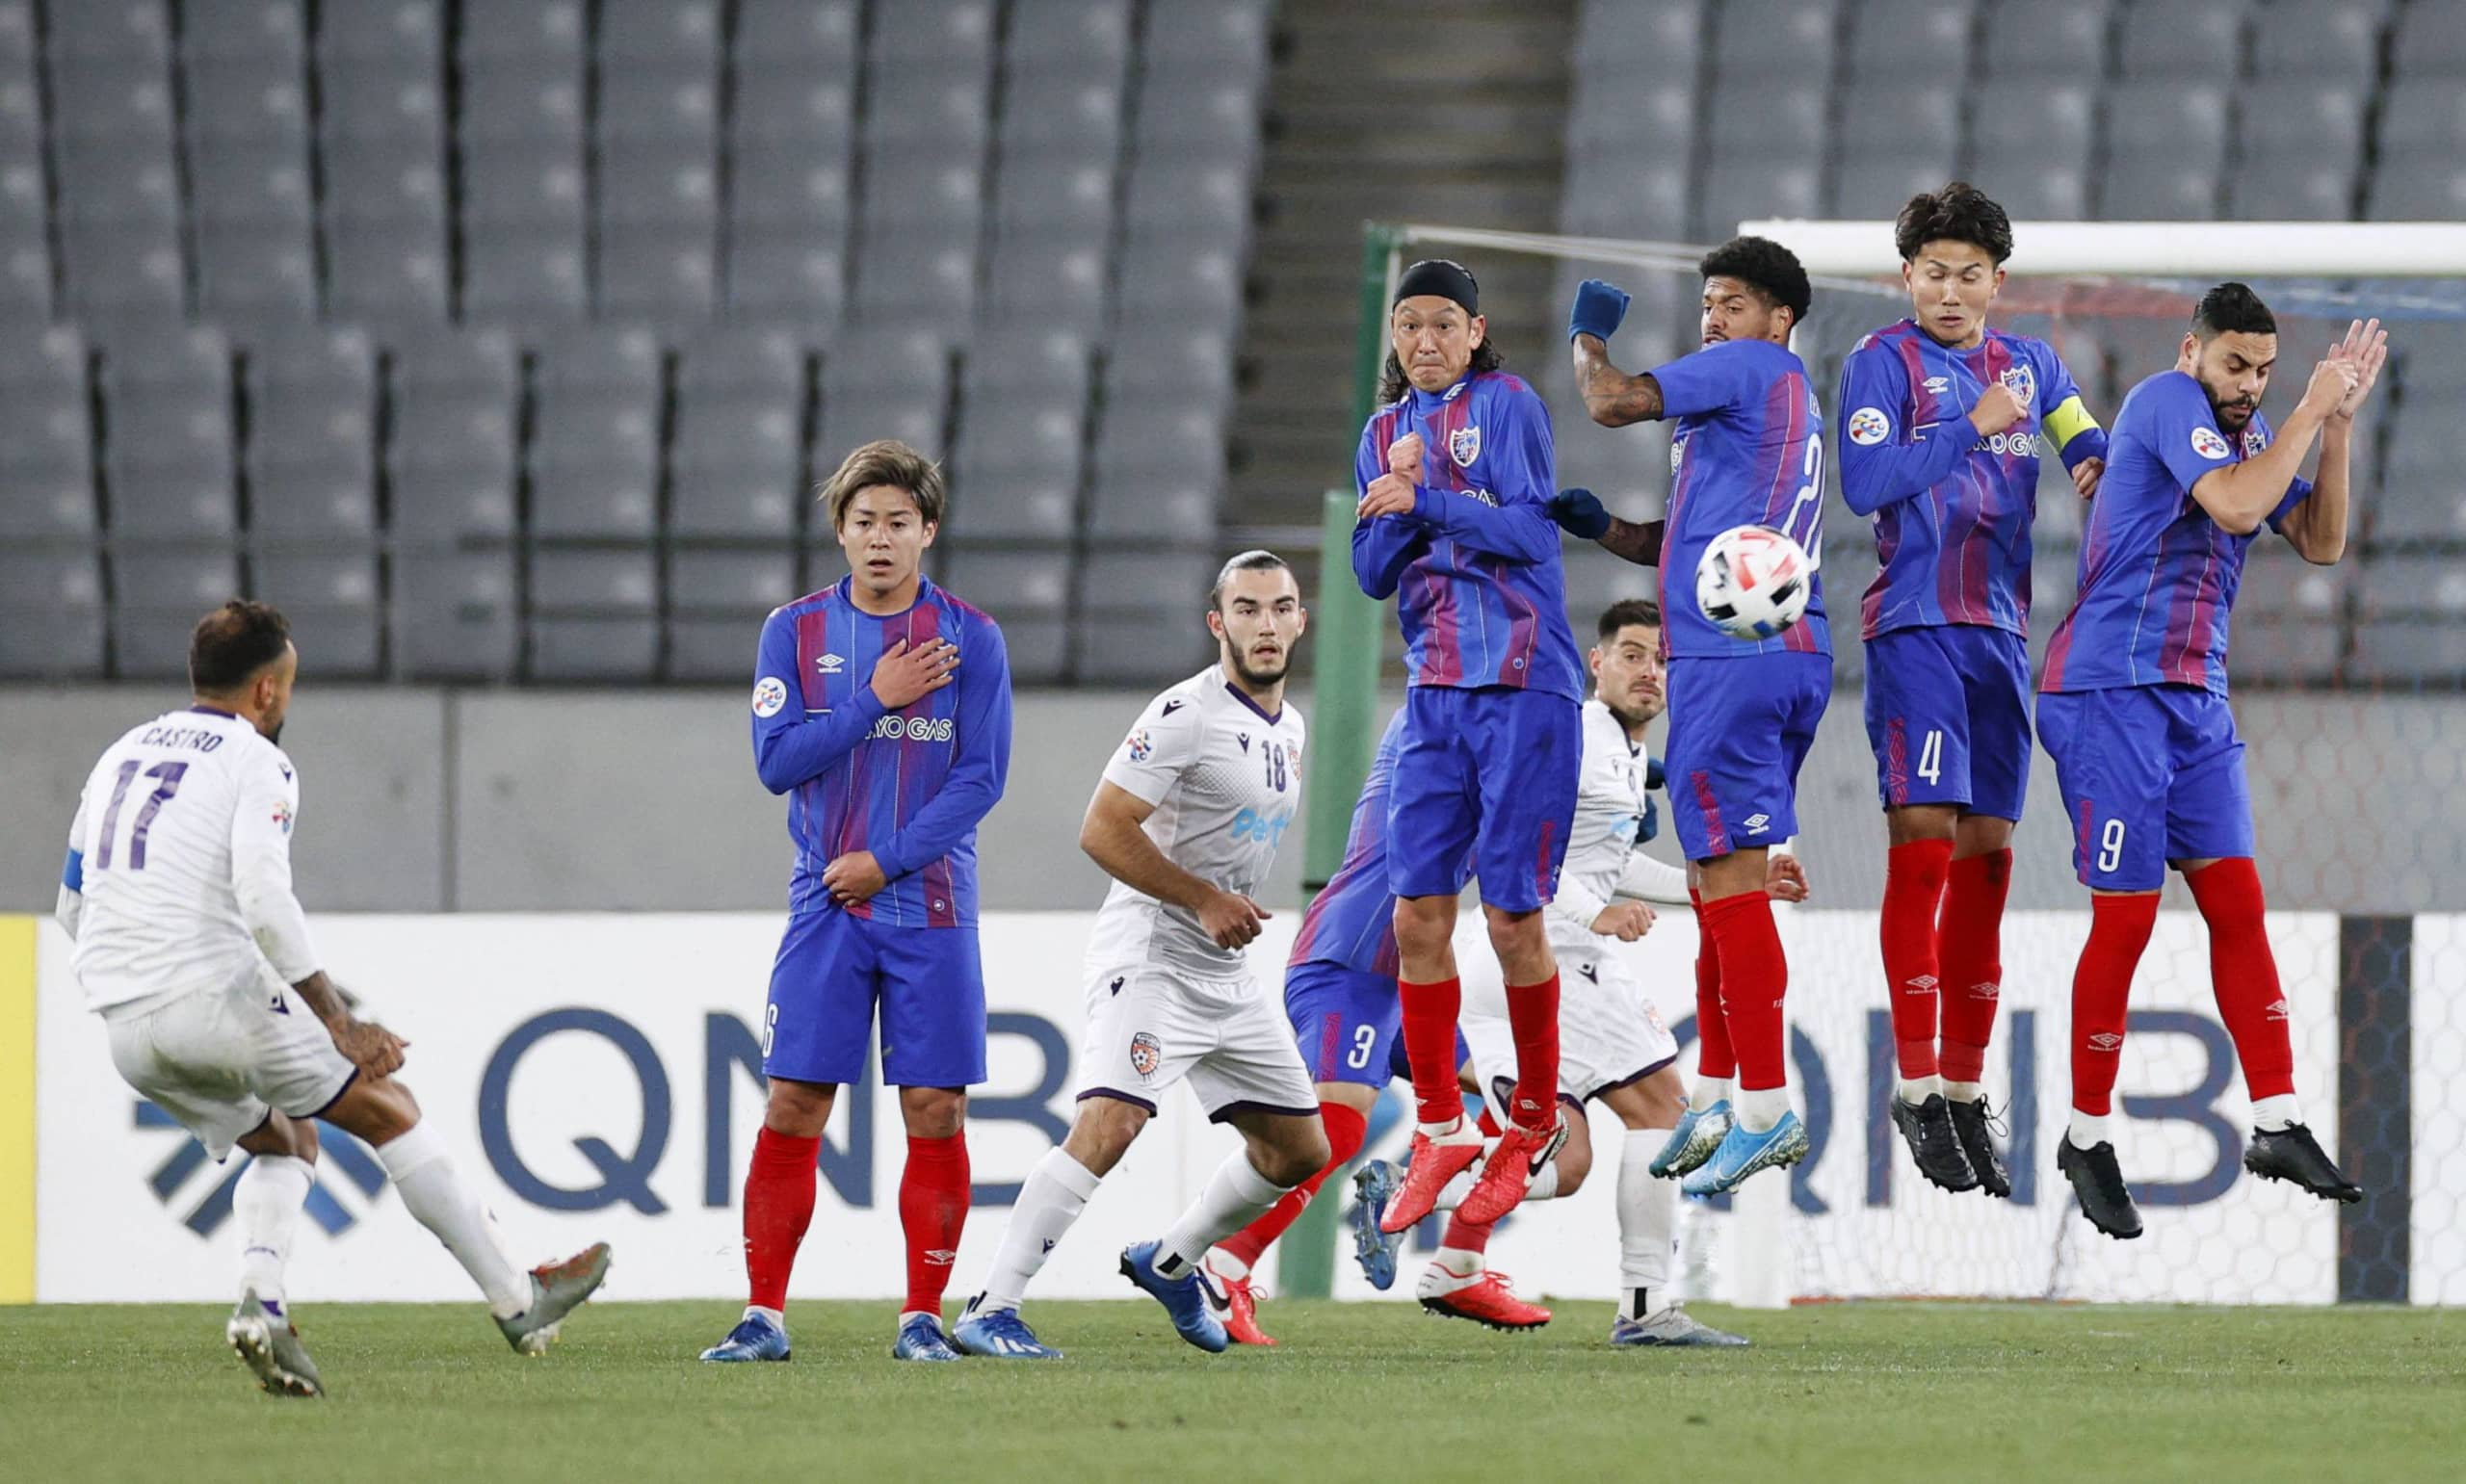 Tokyo players block a free kick during their ACL group stage game against Perth on Feb. 18 at Tokyo Stadium. | KYODO